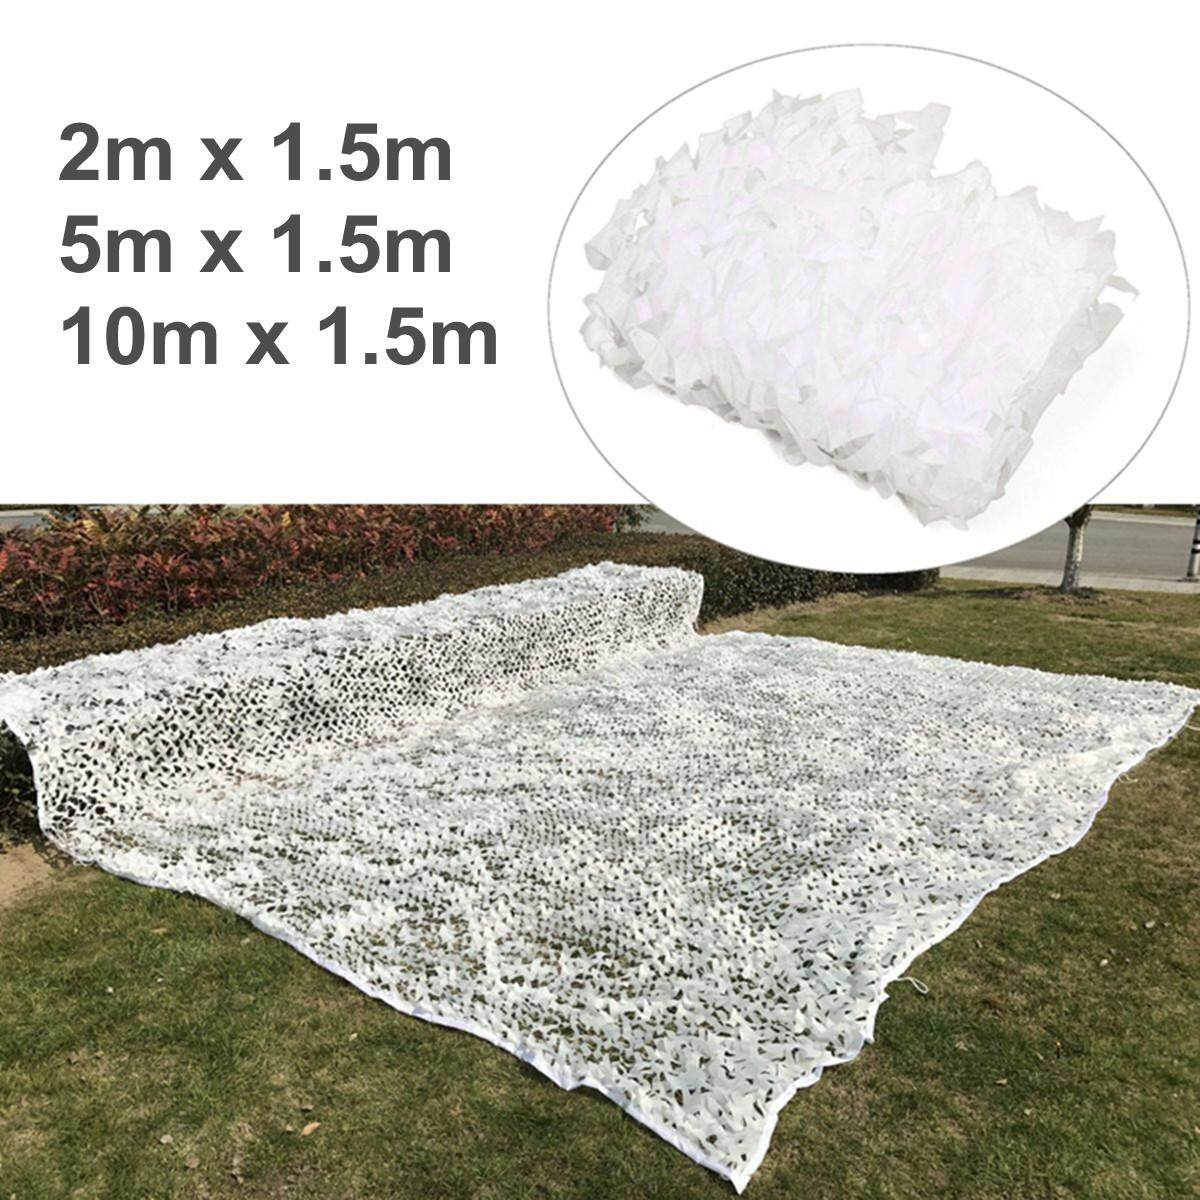 3 Size White Snow Camo Net Camouflage Netting Hunting/Shooting Hide Tent Cover# 5m x 1.5m